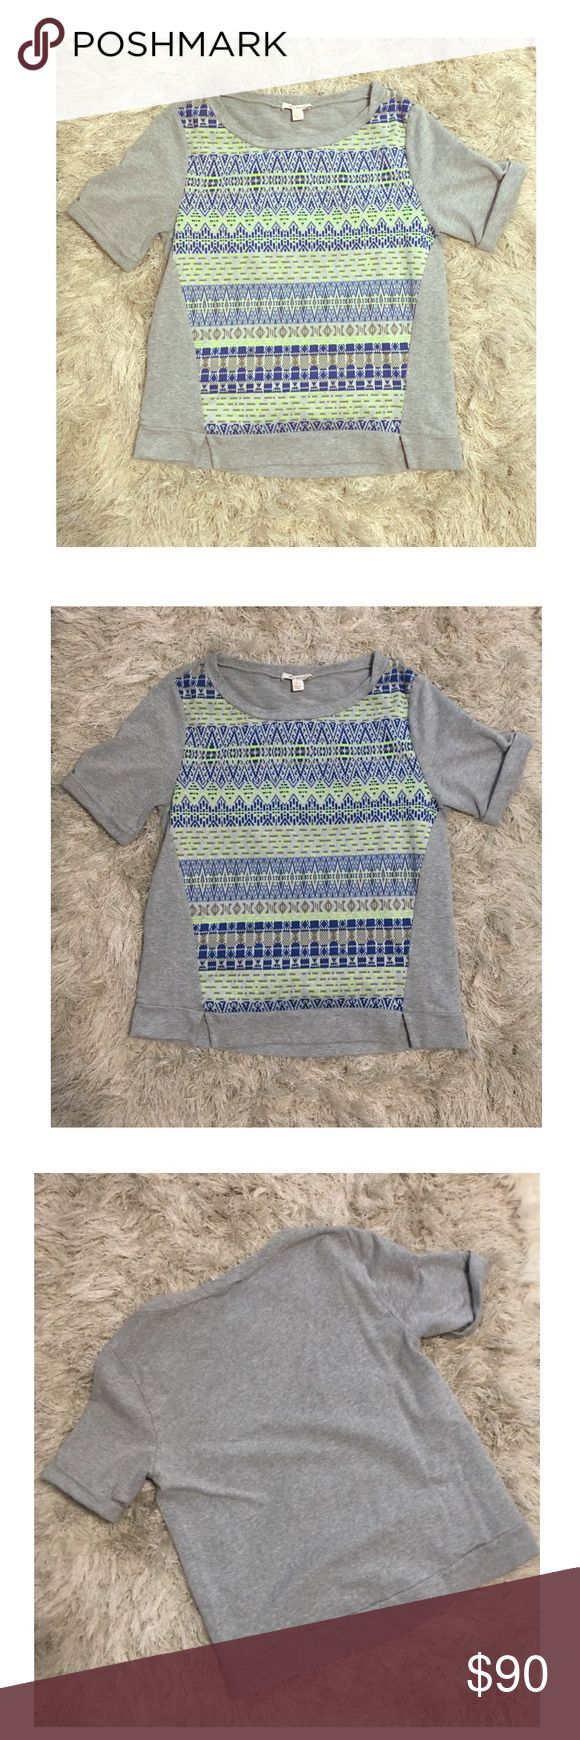 ELLA MOSS Heather Gray Neon Sweatshirt Tee Sm Ella Moss sweatshirt tee 💚💙 ▪️size: small ▪️color: heather gray - blue, neon yellow, gray ▪️48% cotton, 41% polyester, 5% acrylic, 1% spandex ▪️contrast material 47% micro modal, 47% supima cotton, 6% spandex ▪️dry clean  So cute and soft! Let me know if you have any questions!! Ella Moss Tops